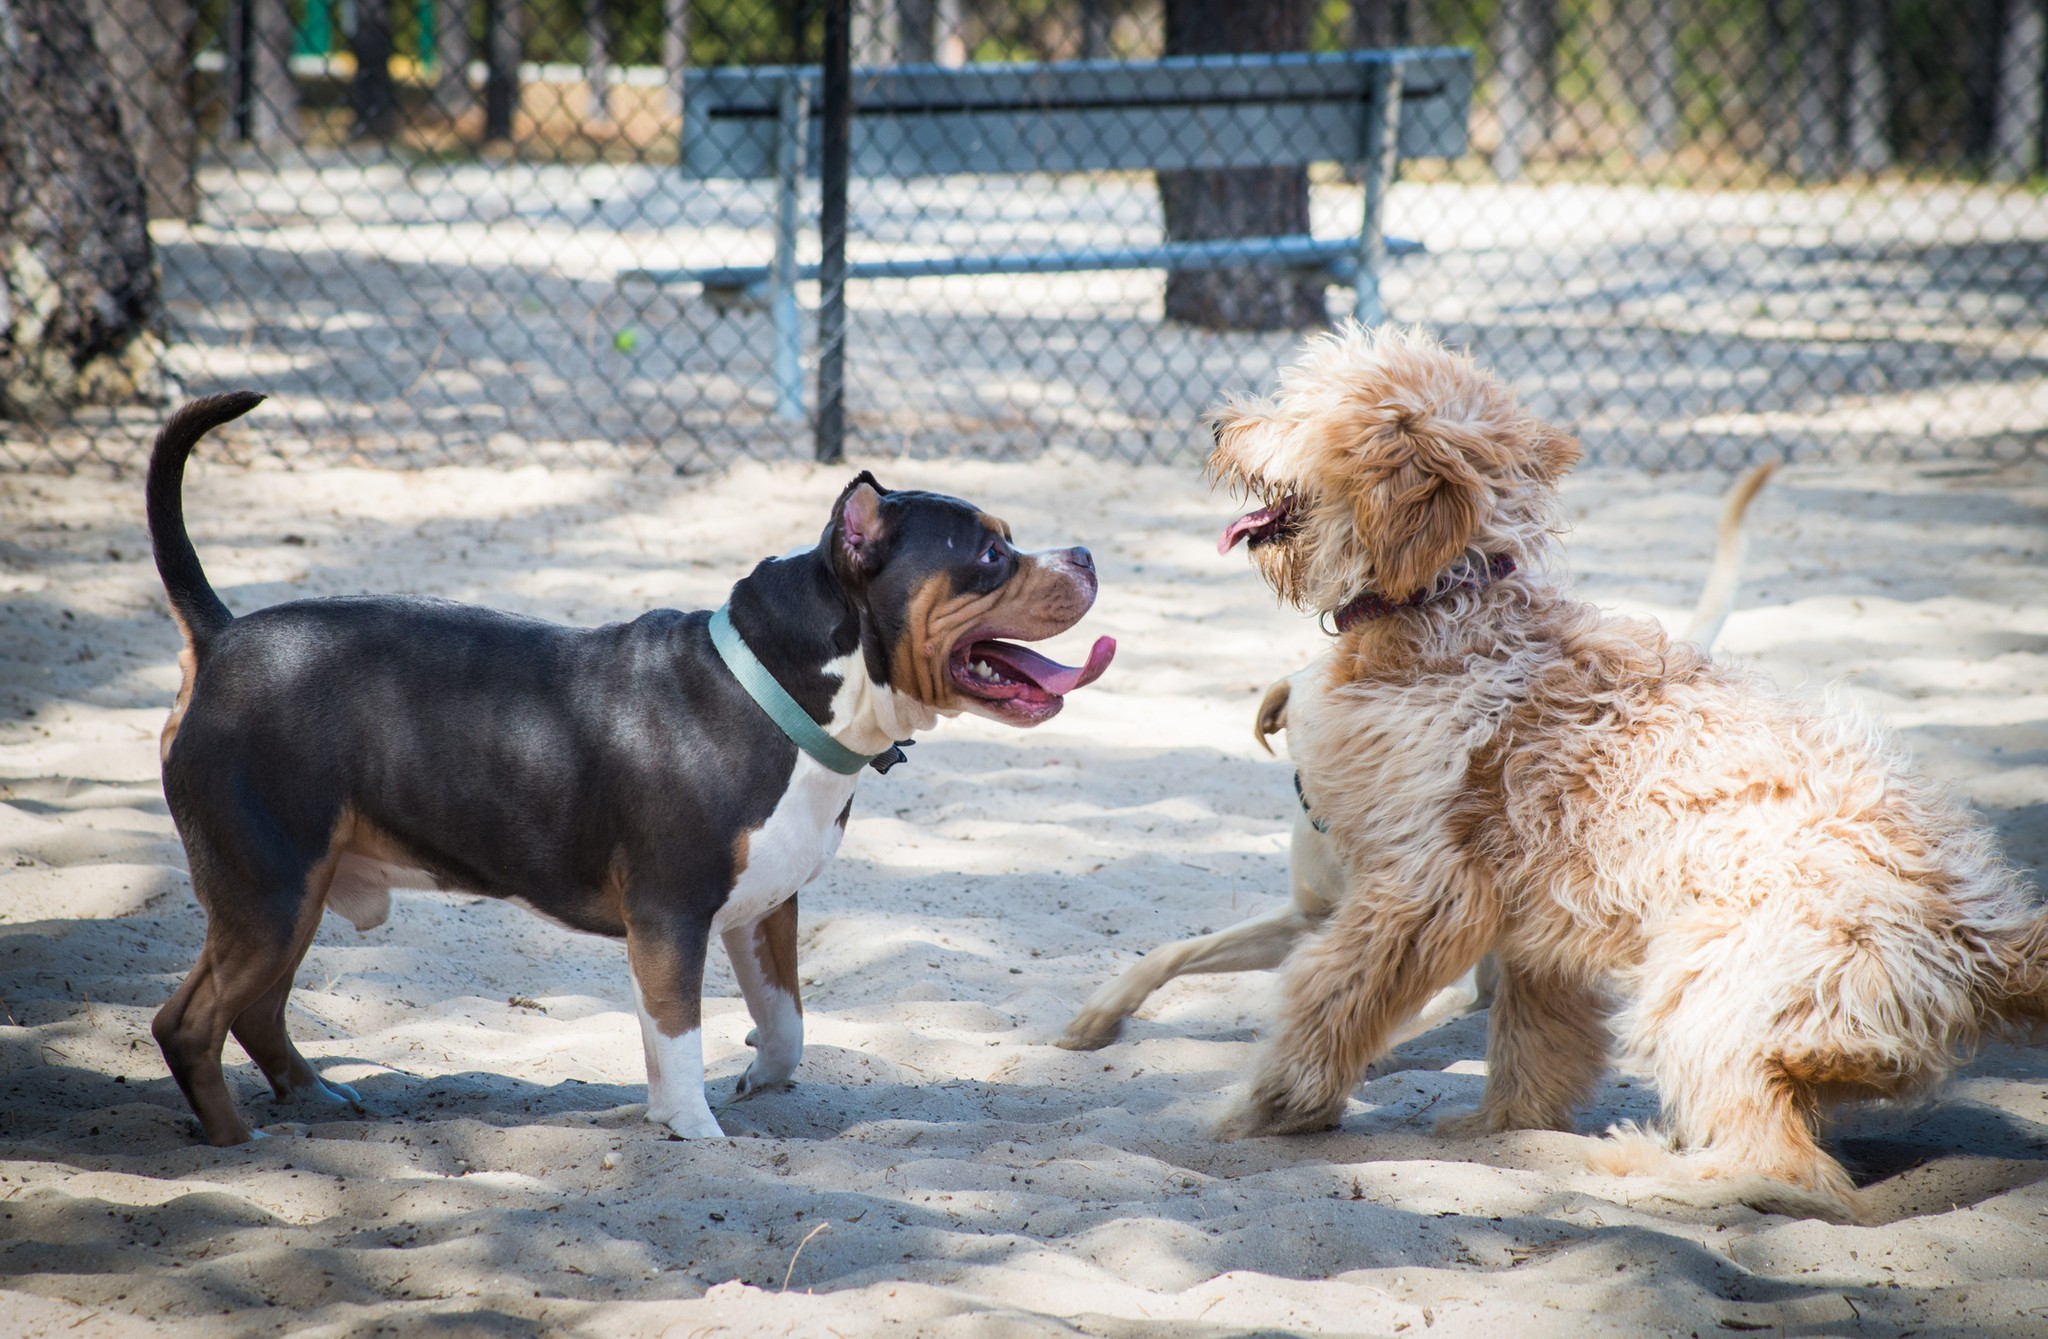 How to Avoid Danger at the Dog Park